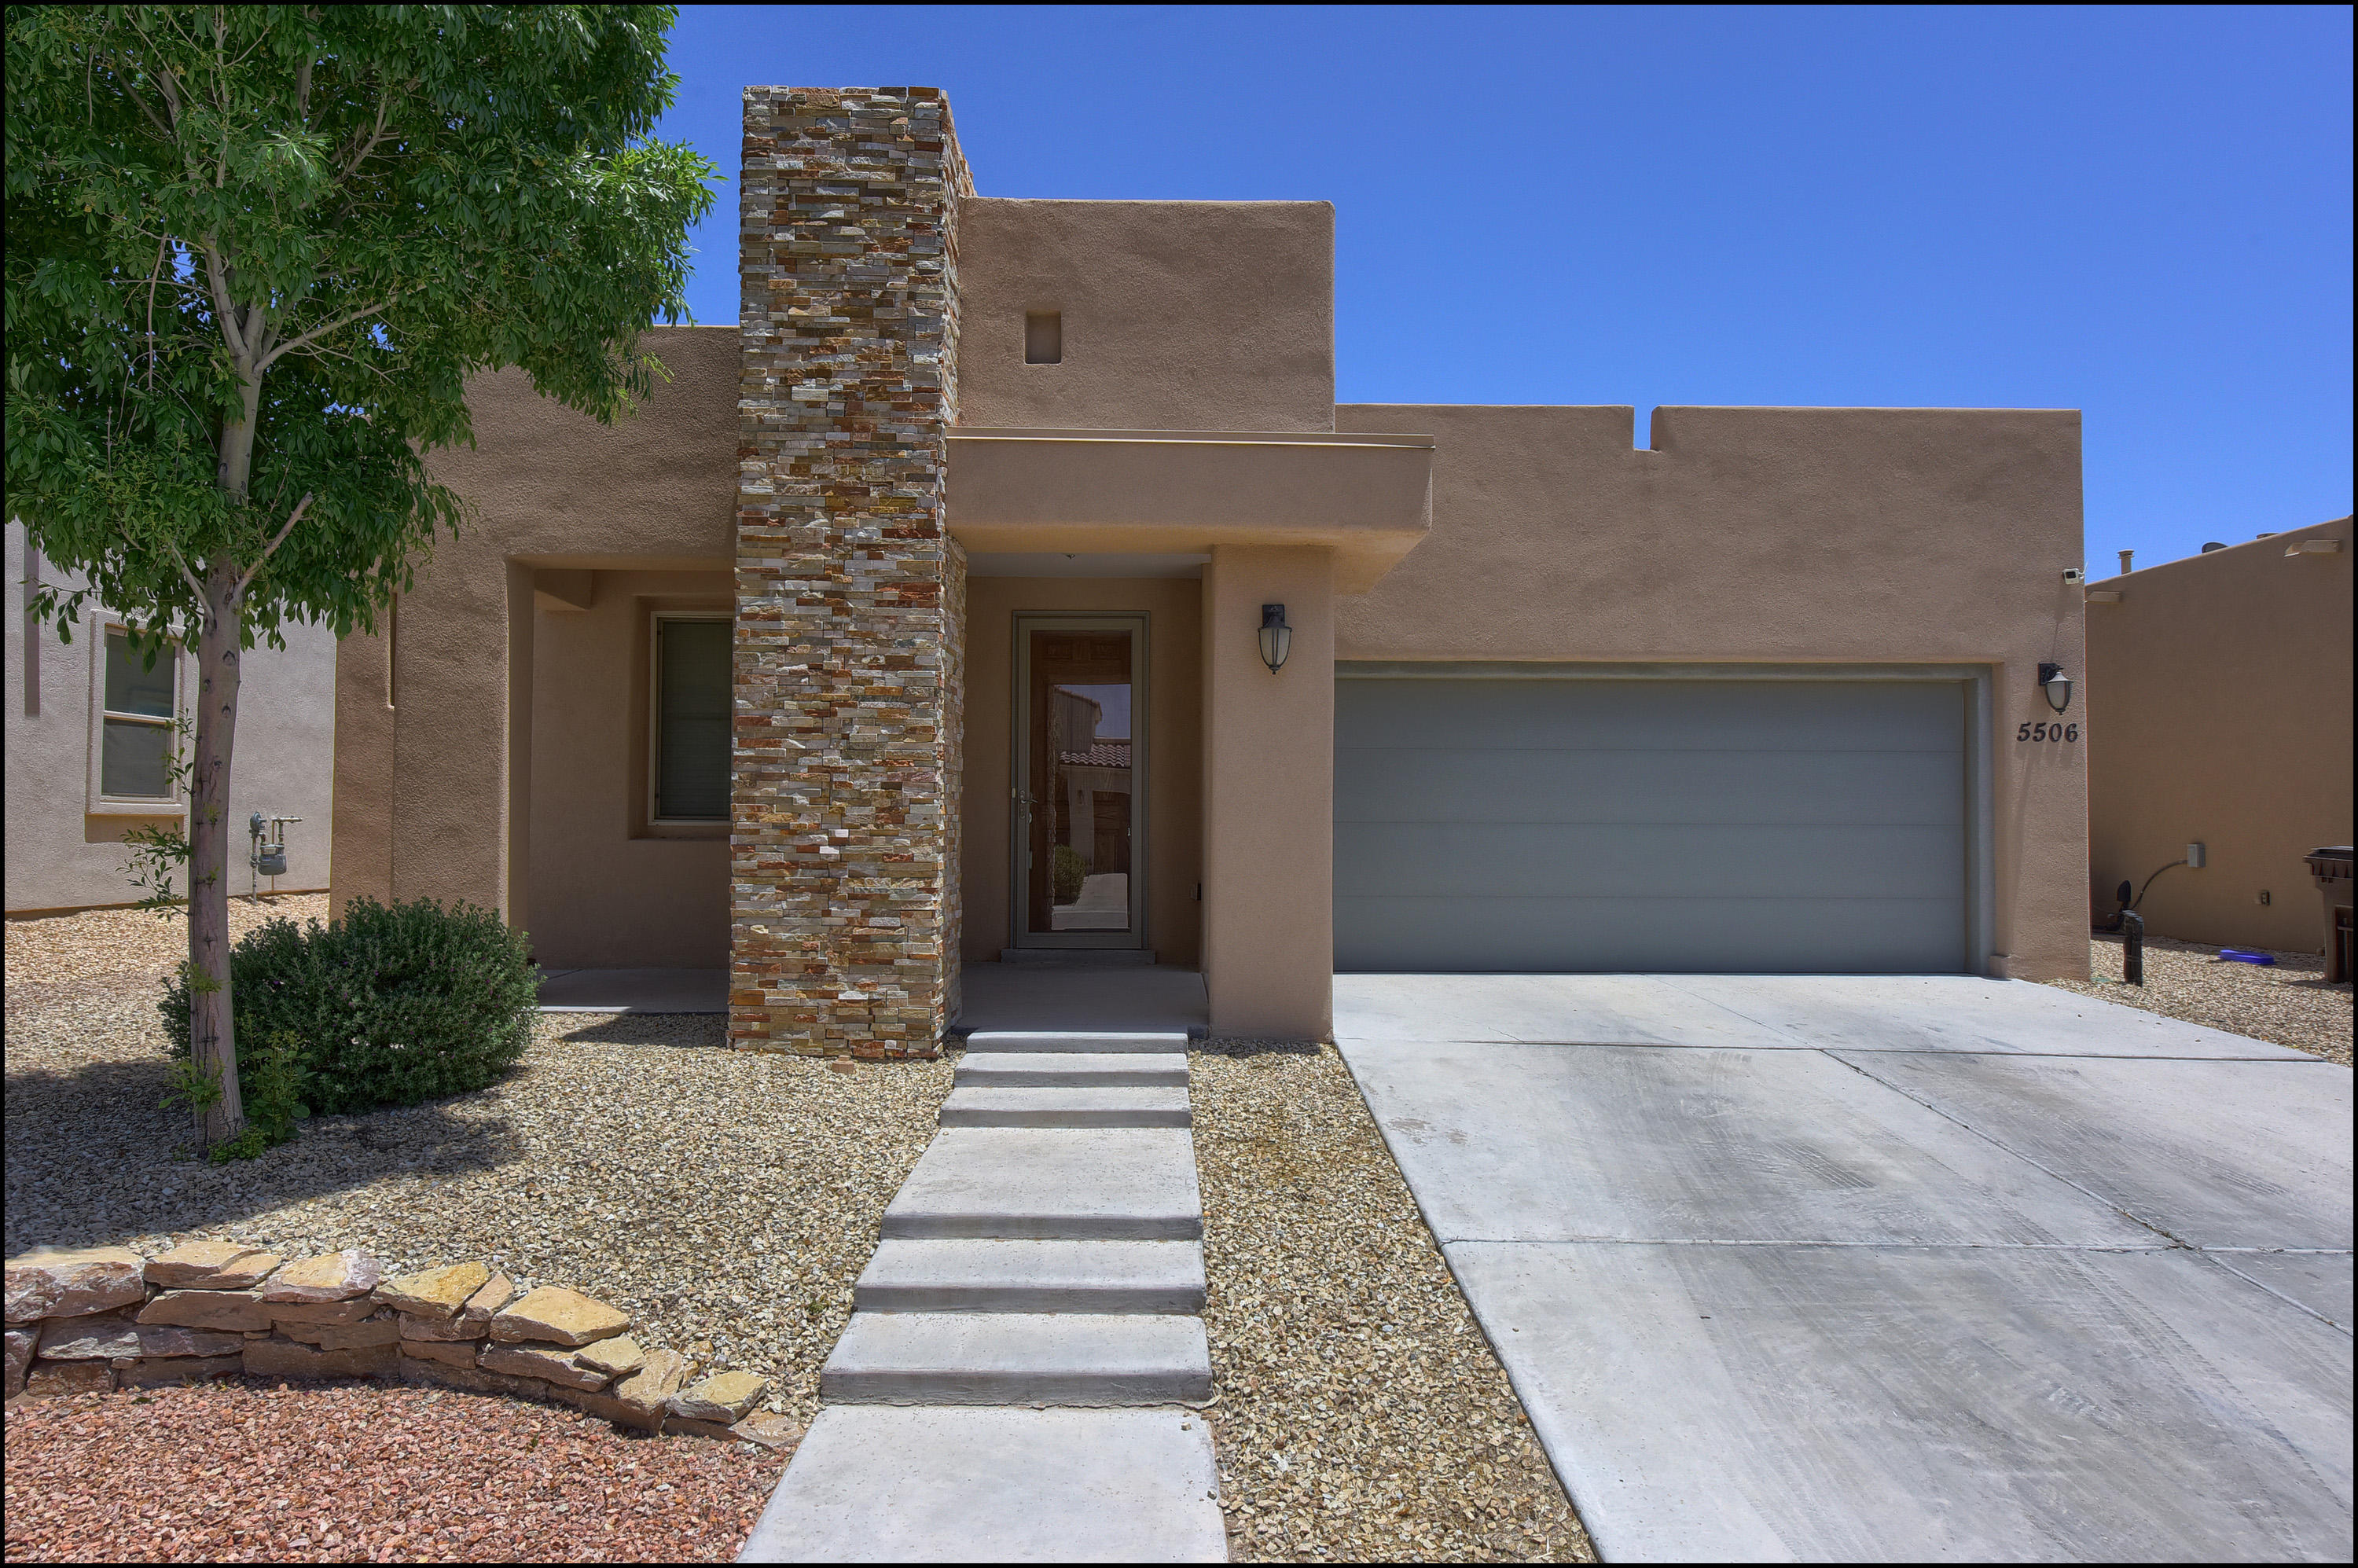 5506 Grove, Santa Teresa, New Mexico 88008, 4 Bedrooms Bedrooms, ,2 BathroomsBathrooms,Residential,For sale,Grove,808939